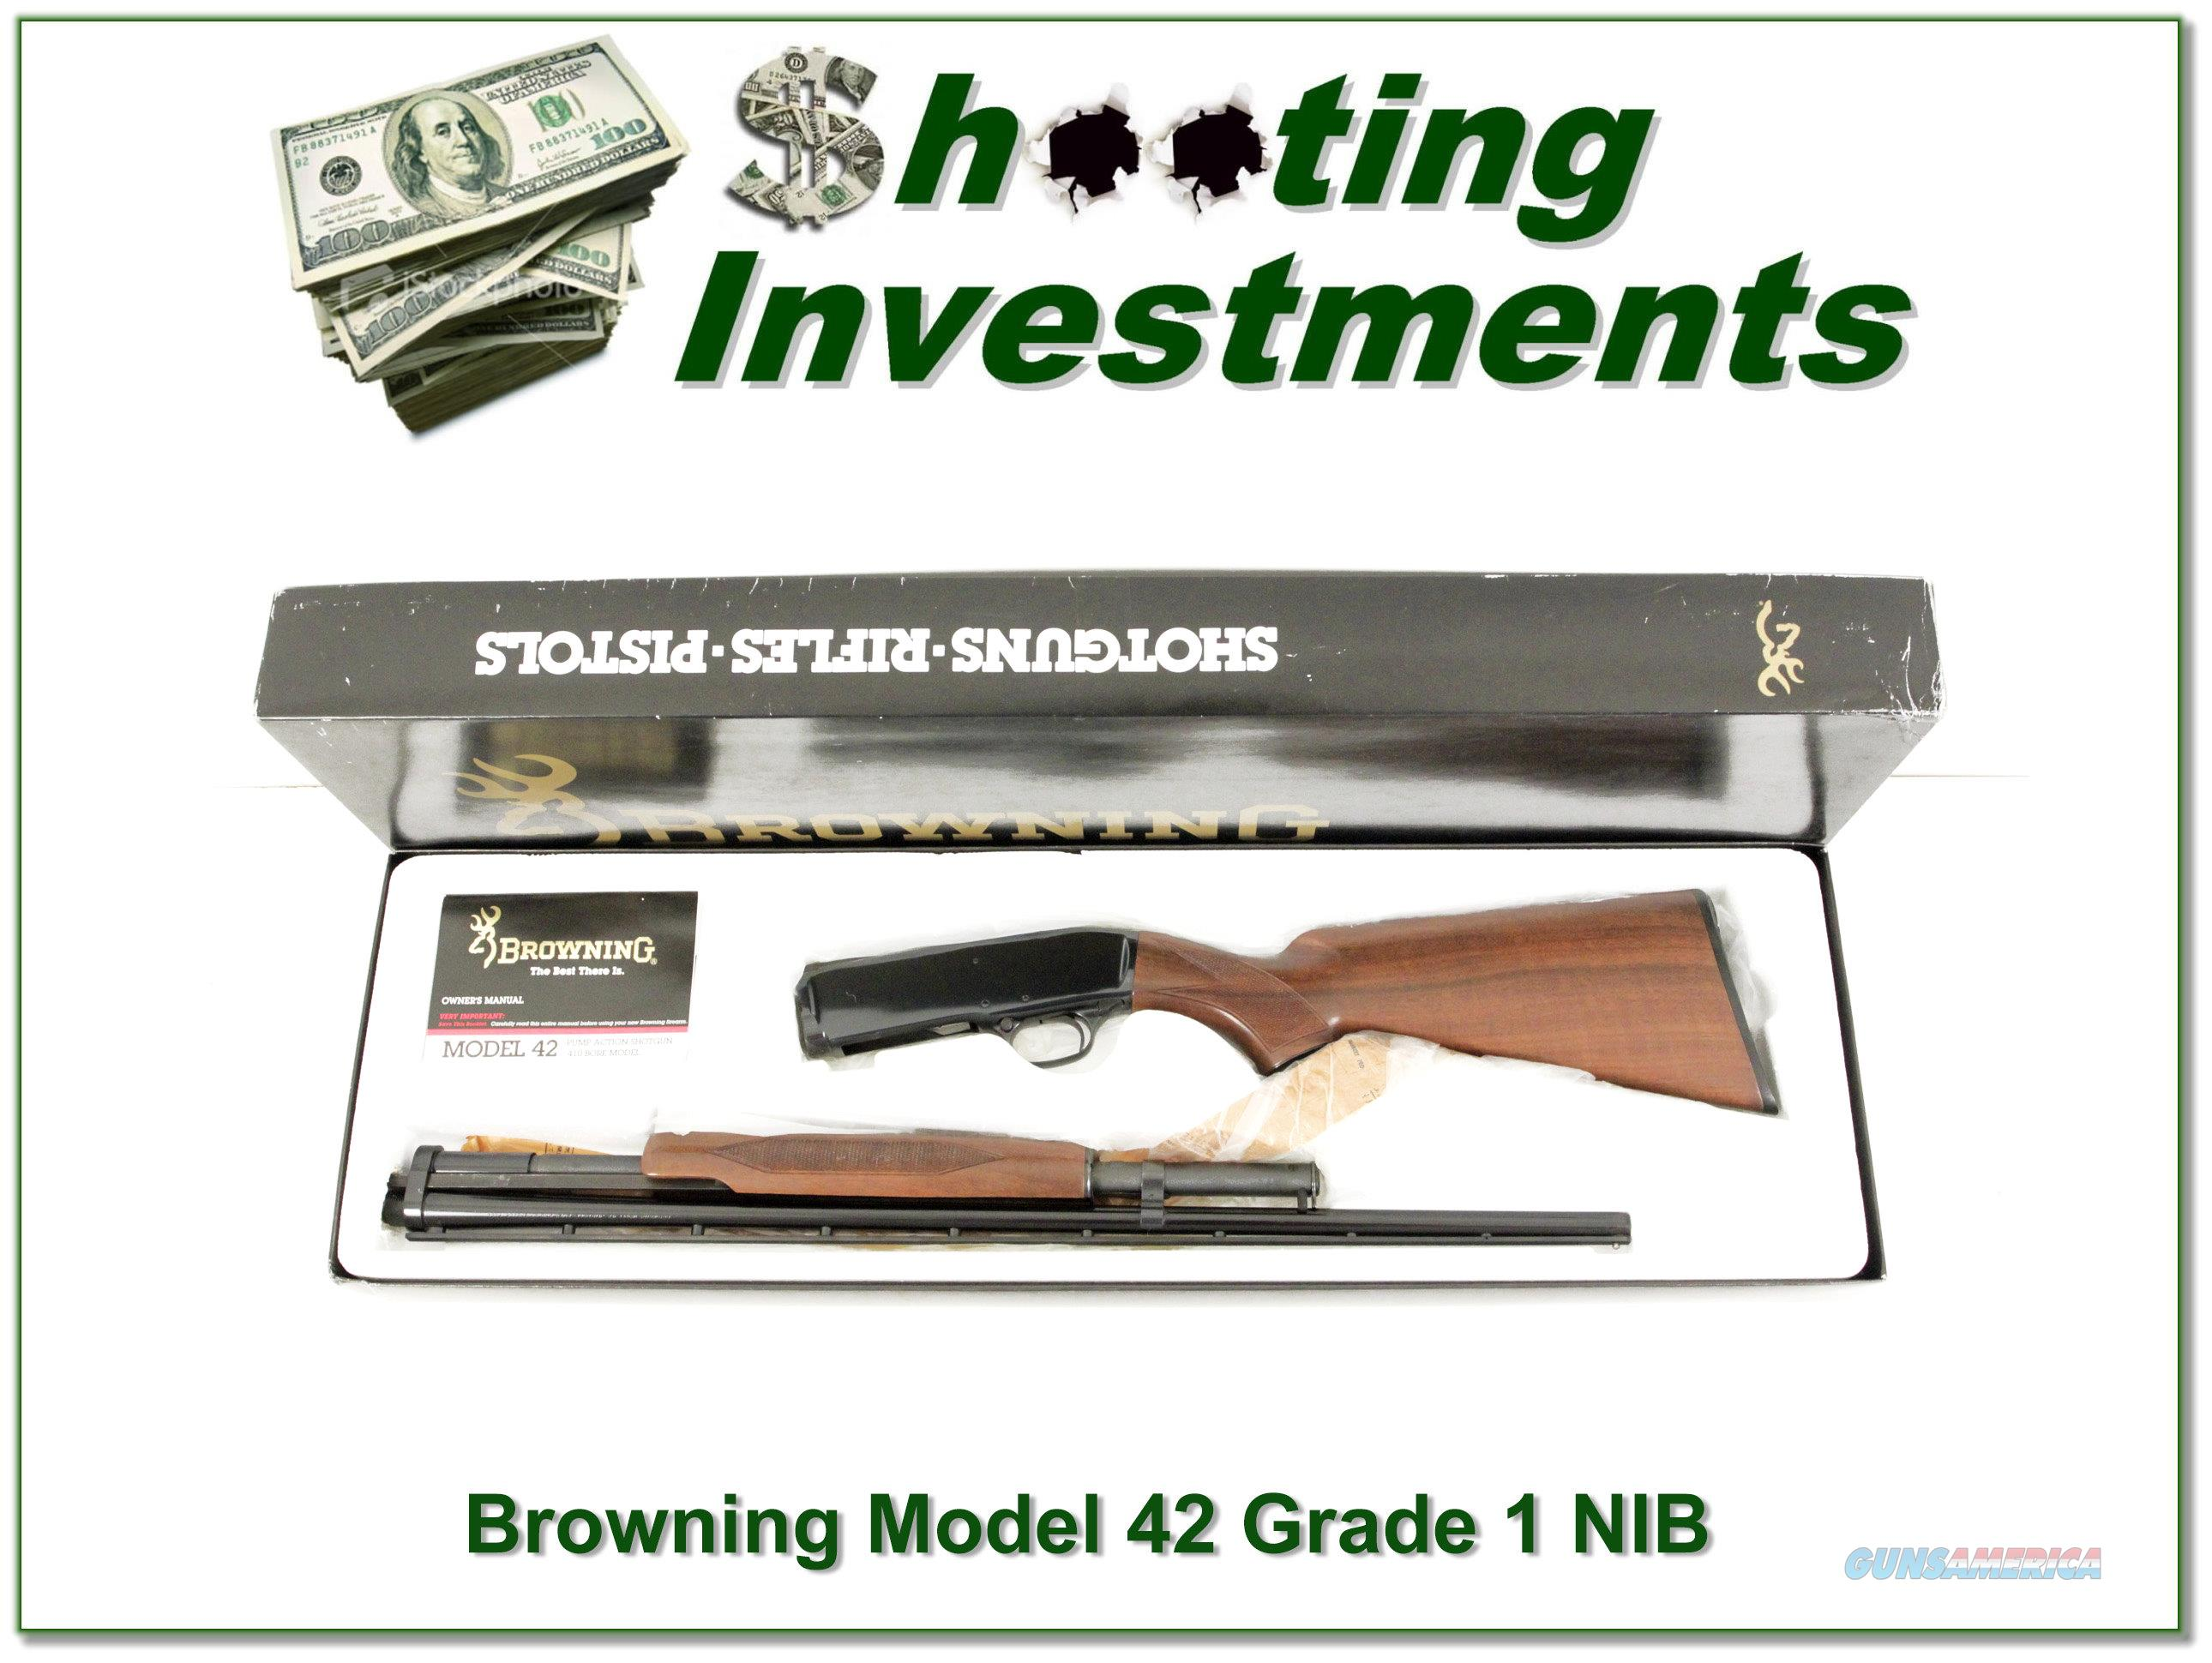 Browning Model 42 410 unfired and NIB Box!  Guns > Shotguns > Browning Shotguns > Autoloaders > Hunting